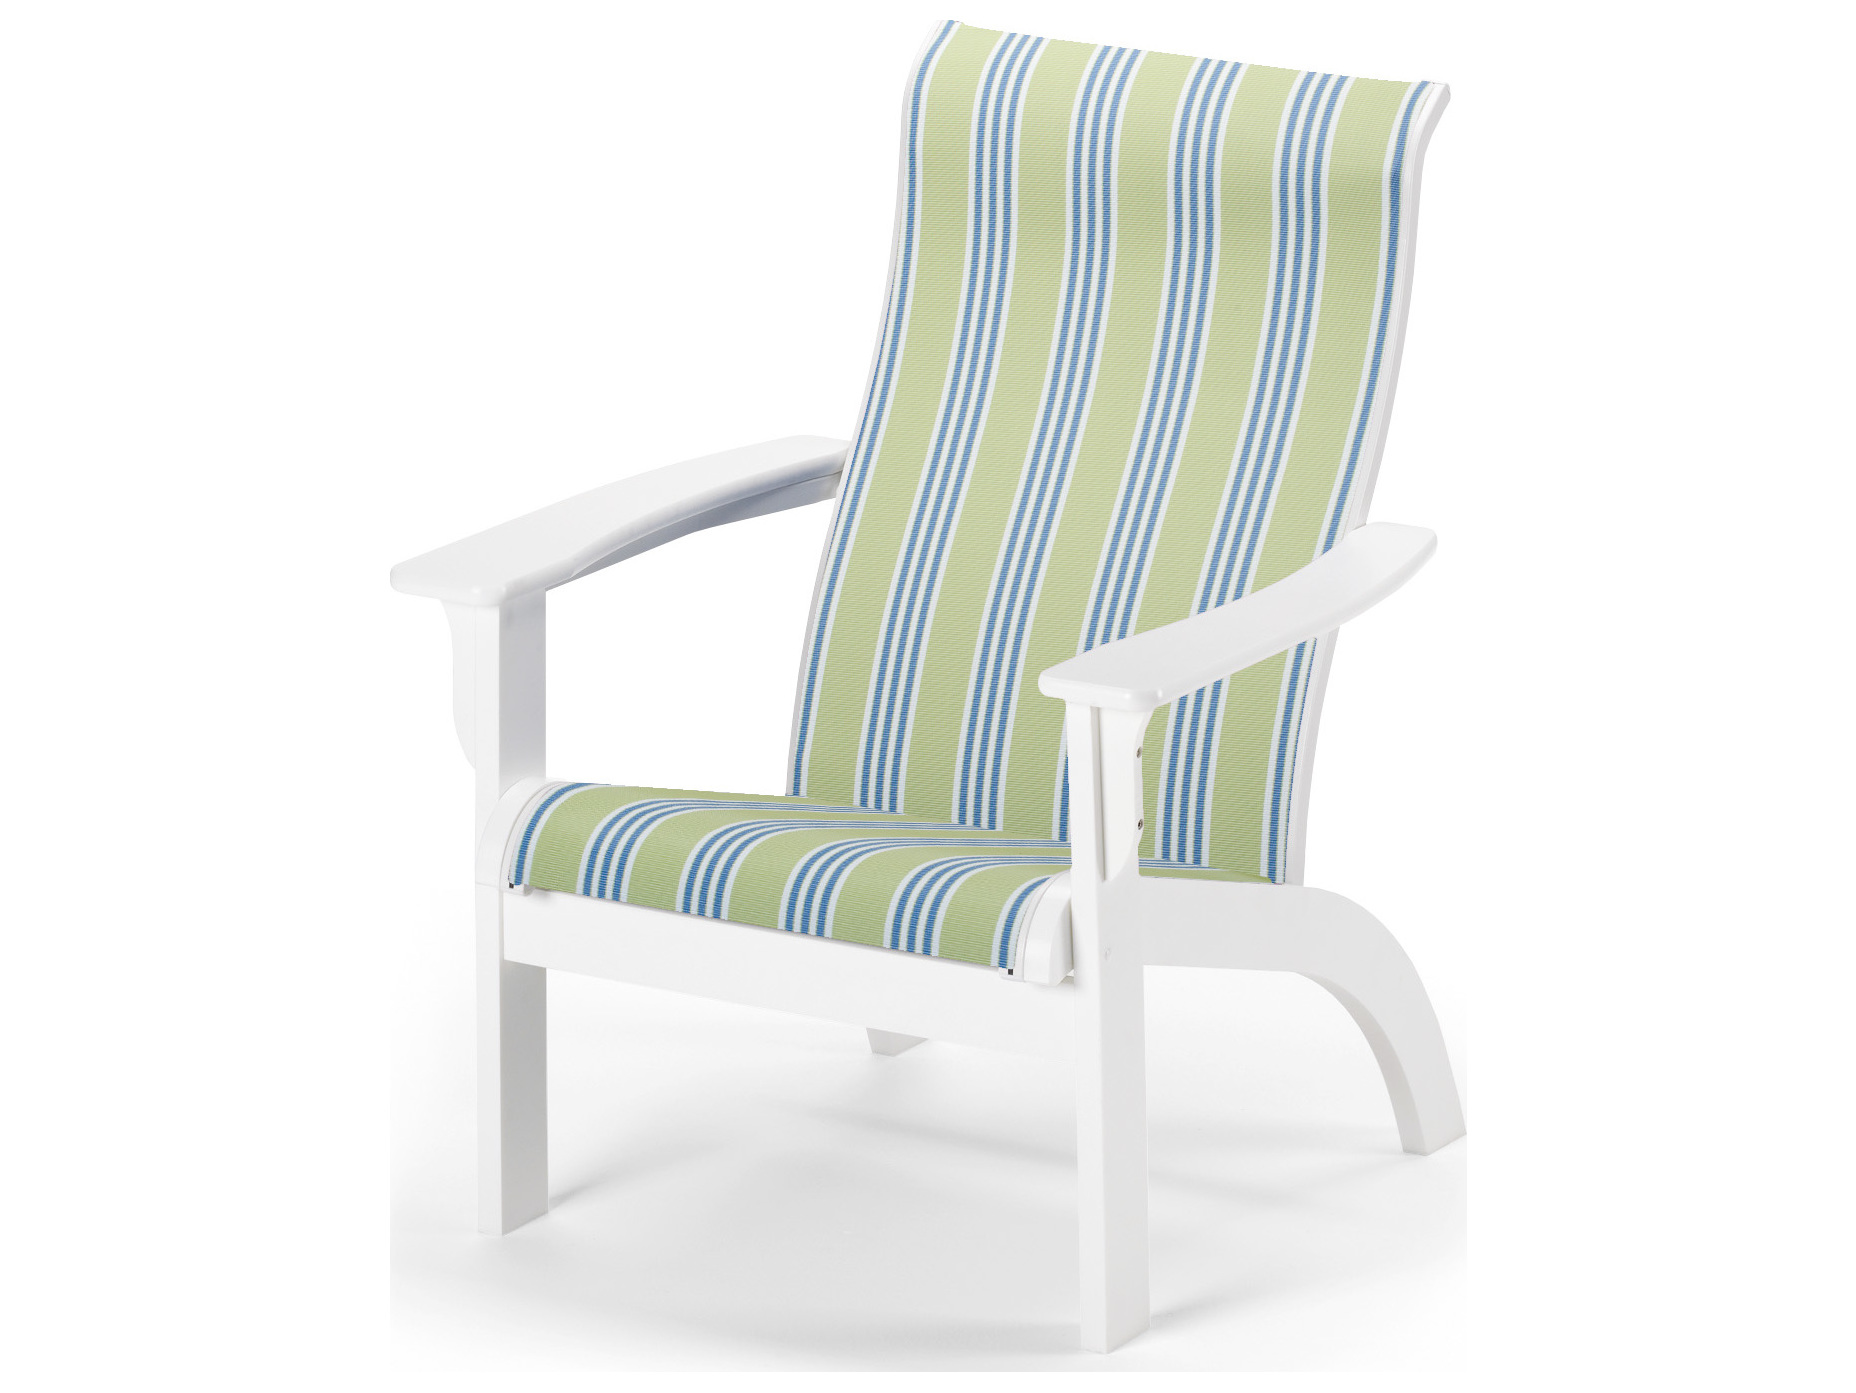 Telescope casual adirondack mgp sling recycled plastic lounge chair tc9a70 - Chaise adirondack plastique recycle costco ...